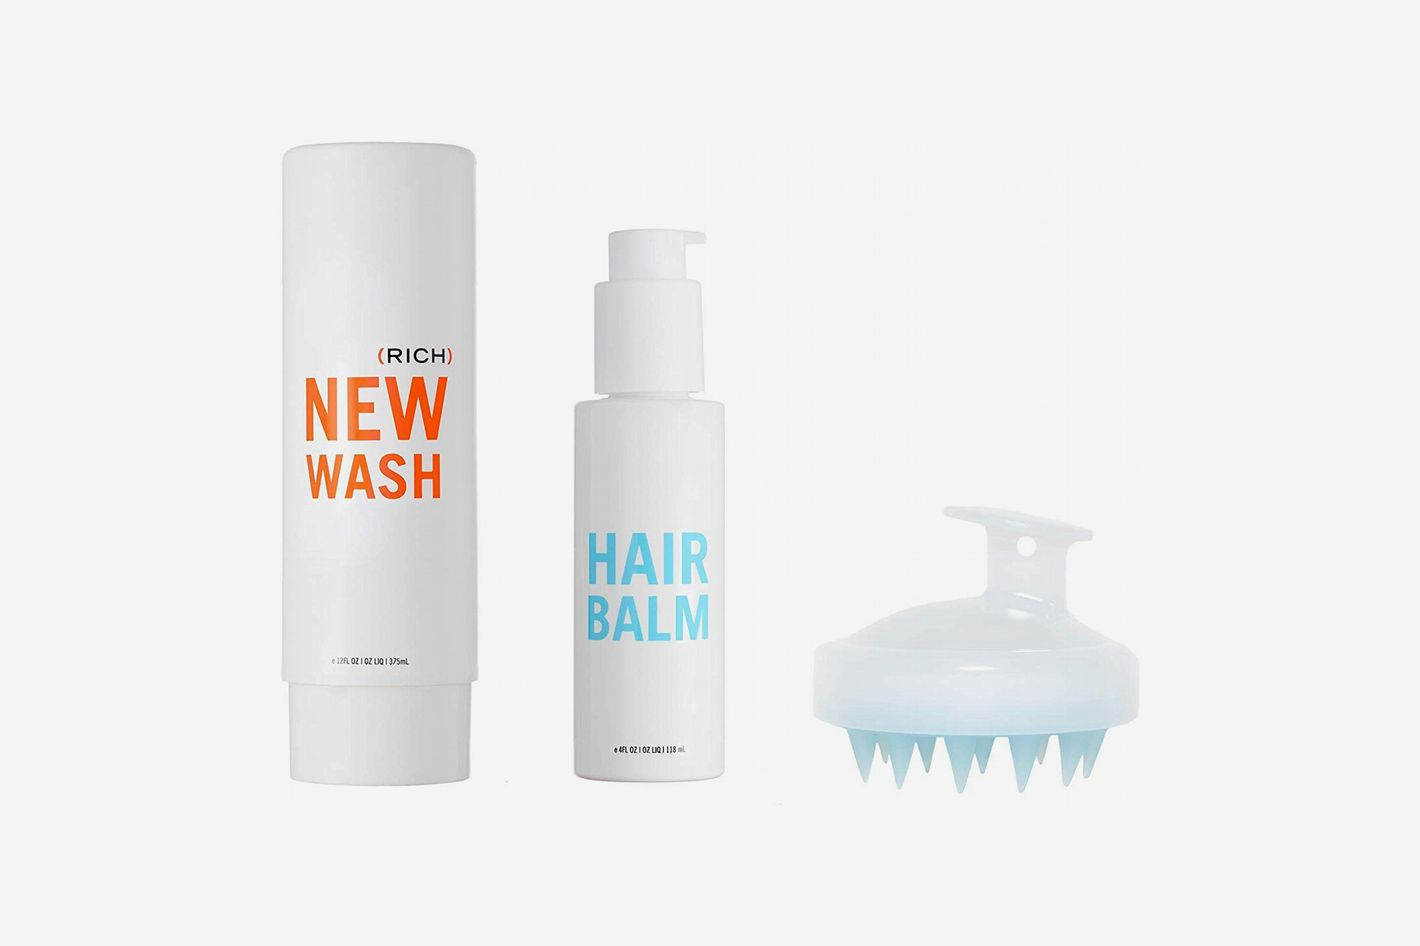 Hairstory New Wash Rich Kit - Hair Cleanser 8 oz + Hair Balm 4 oz + In-Shower Brush for Cleansing & Conditioning